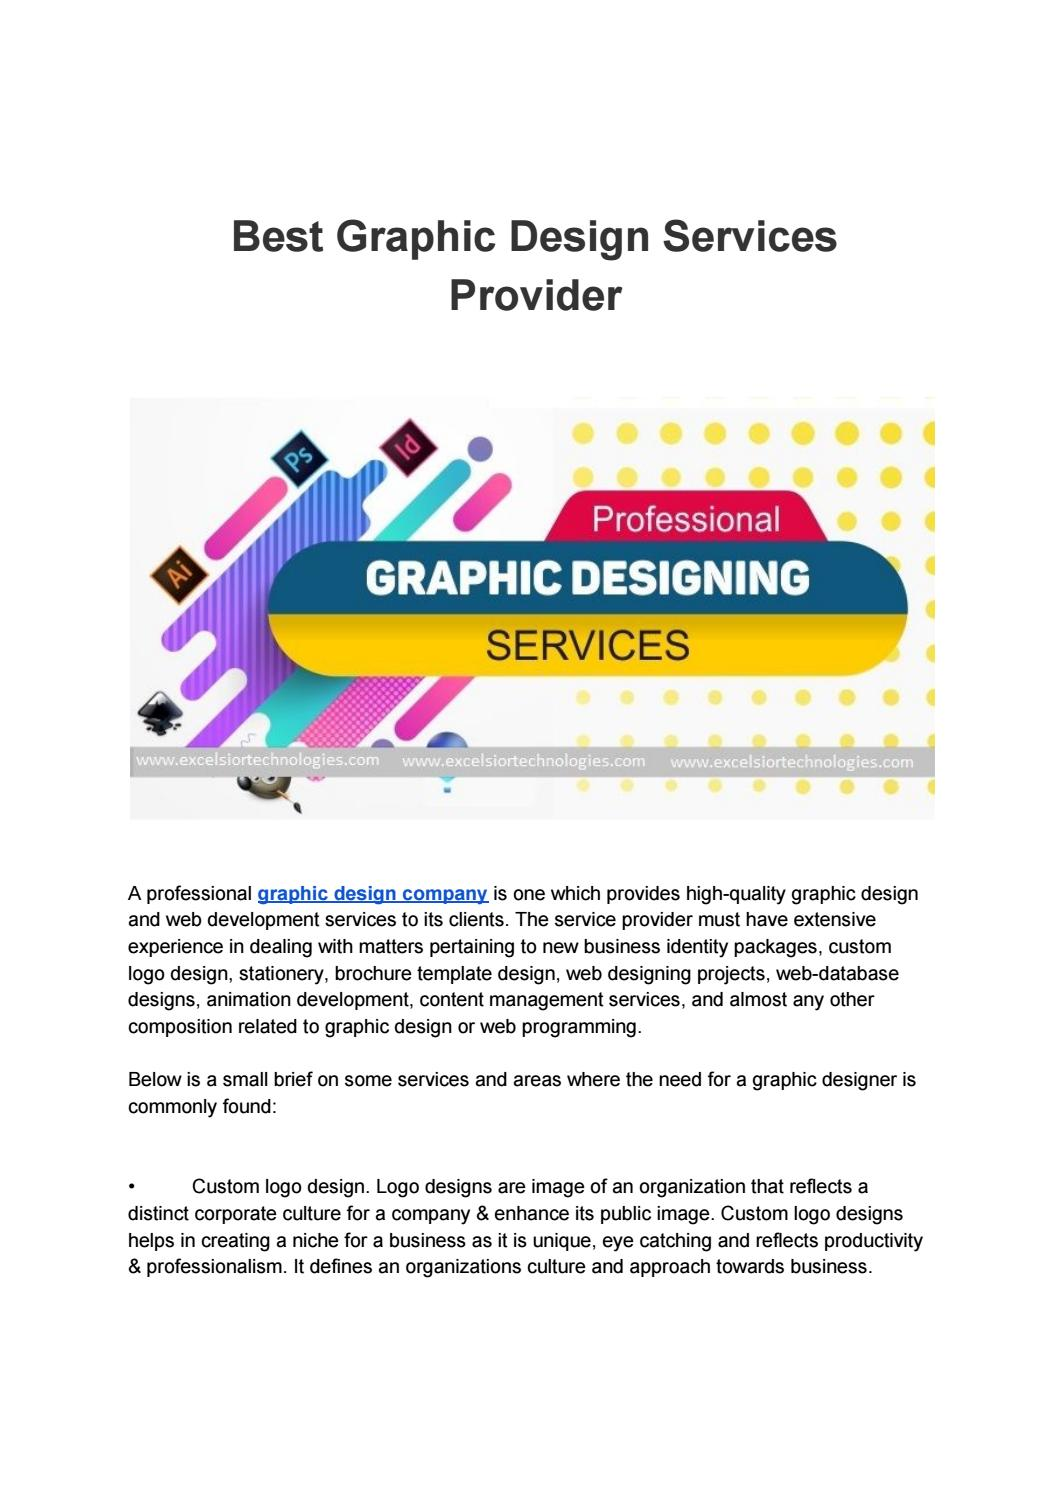 Best Graphic Design Services Provider By Excelsior Technologies Issuu